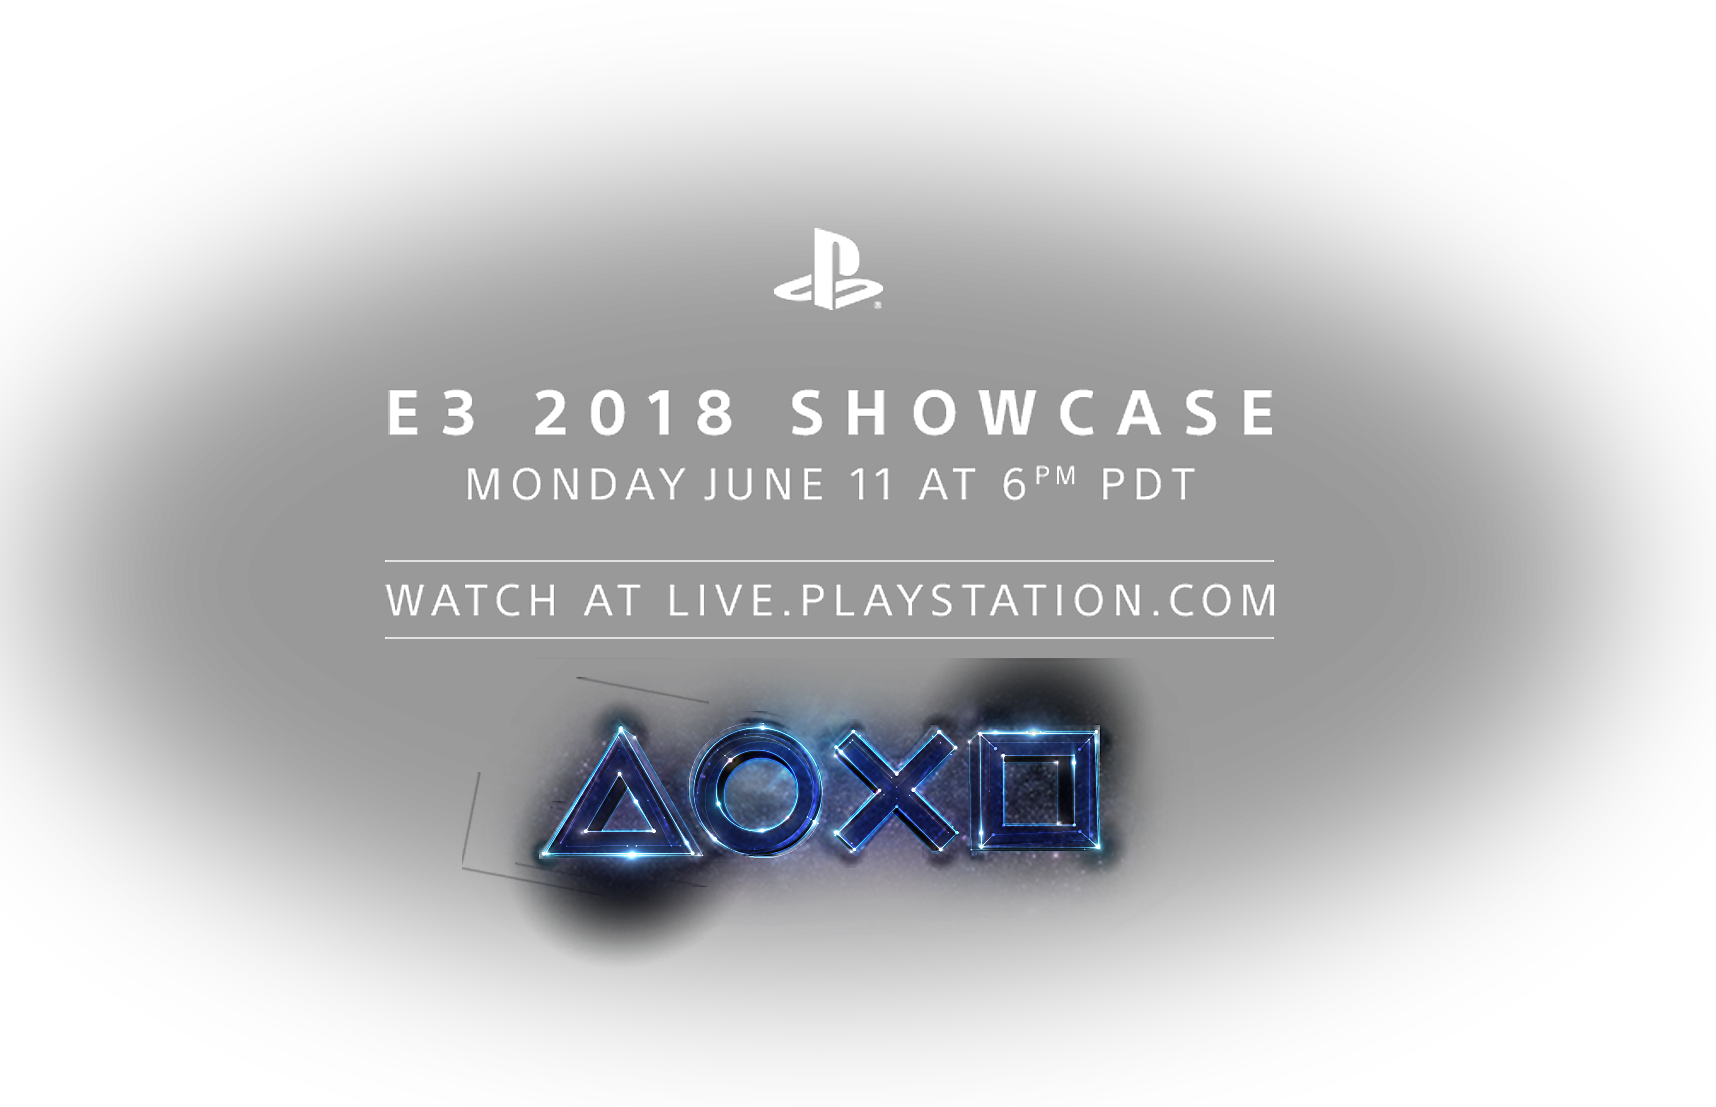 E3 2018 Showcase | Monday, June 11 at 6PM PDT